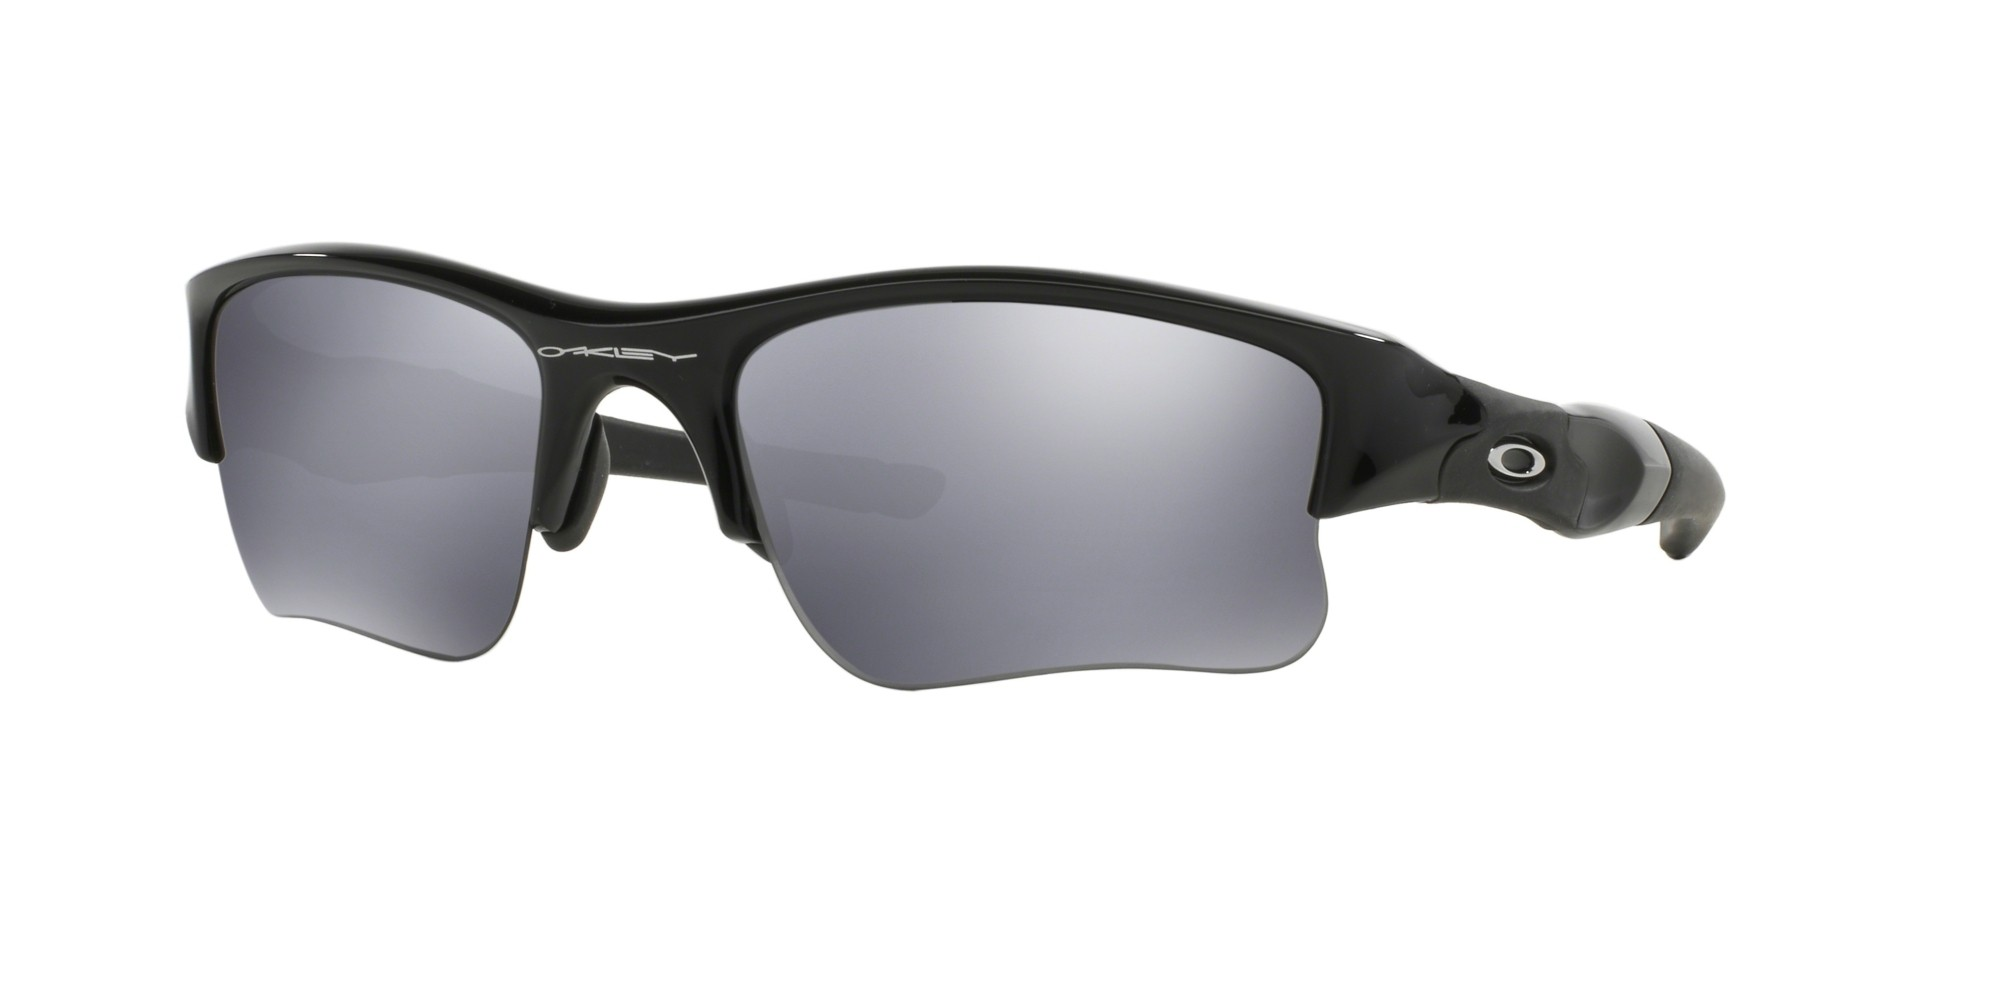 Flak Jacket Xlj >> Authentic Oakley Flak Jacket Xlj Prescription Sunglasses